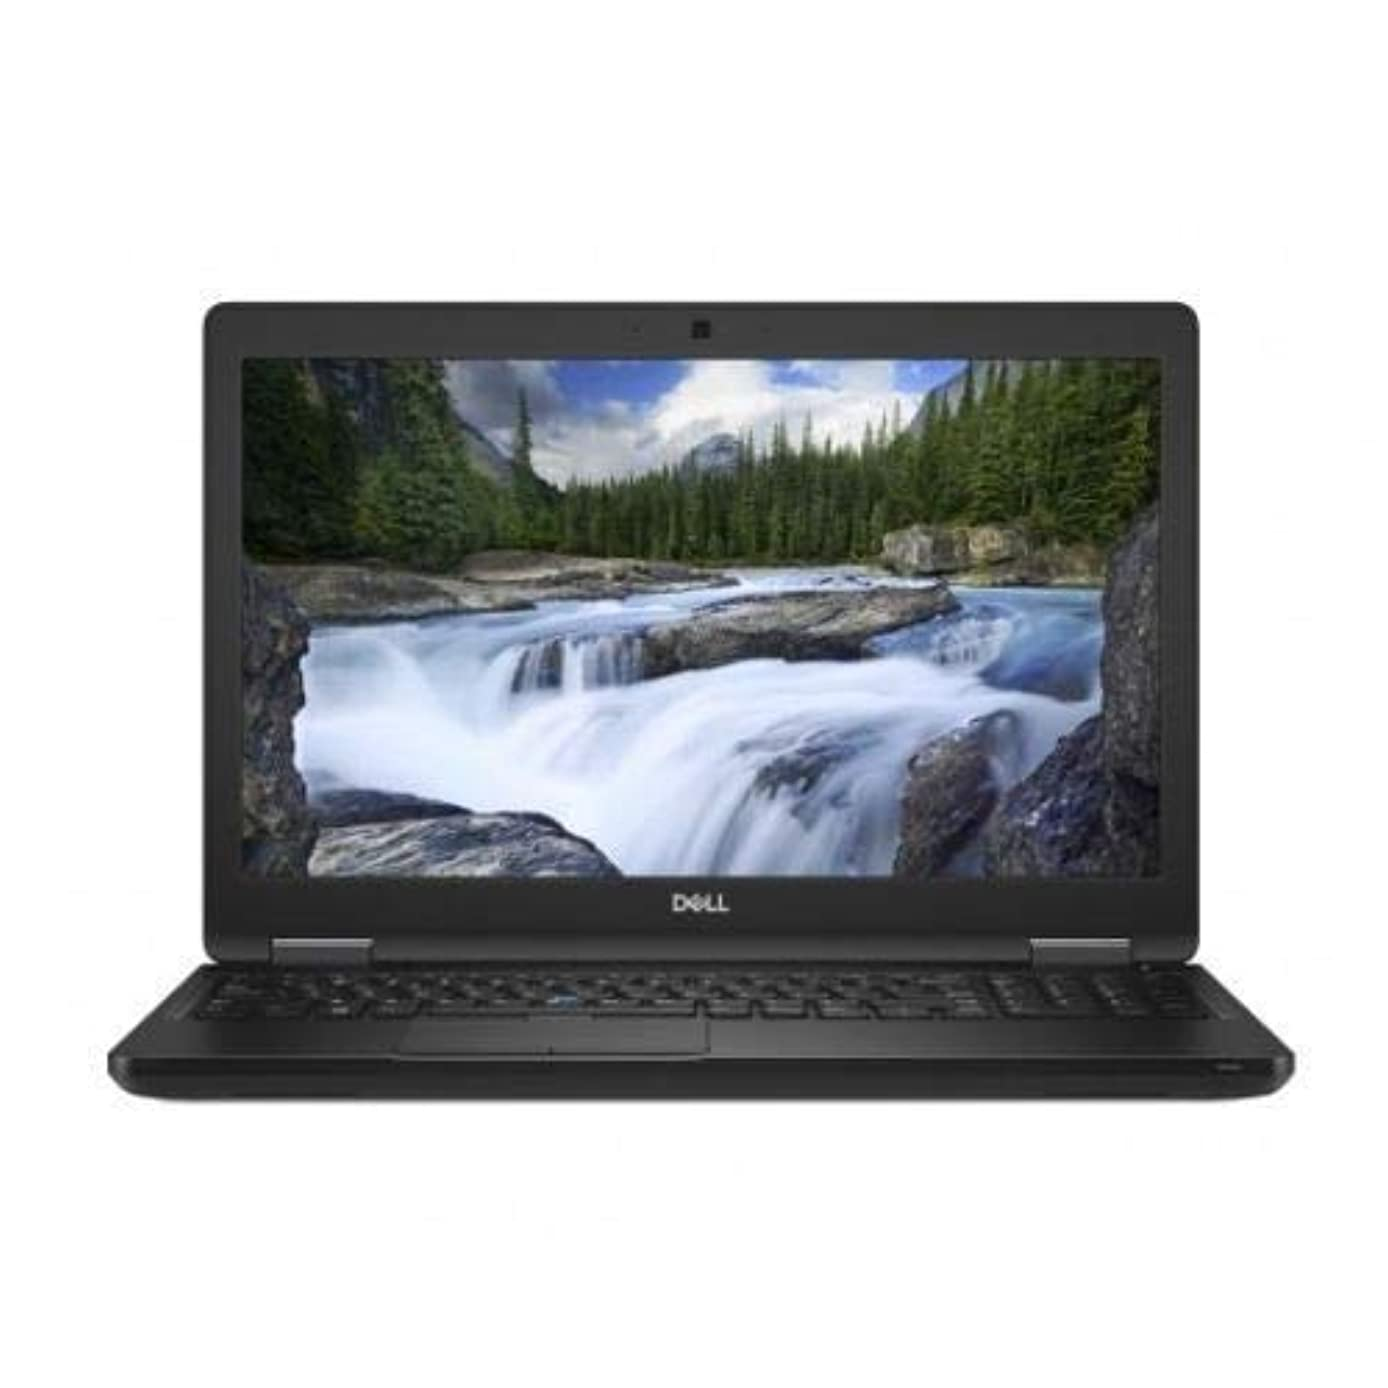 New Latitude 5590 Notebook with Intel i7-8650U Quad Core CPU, 32GB DDR4 RAM, 2TB SSD, 15.6 inch Display, Business Laptop, 3 Years Warranty